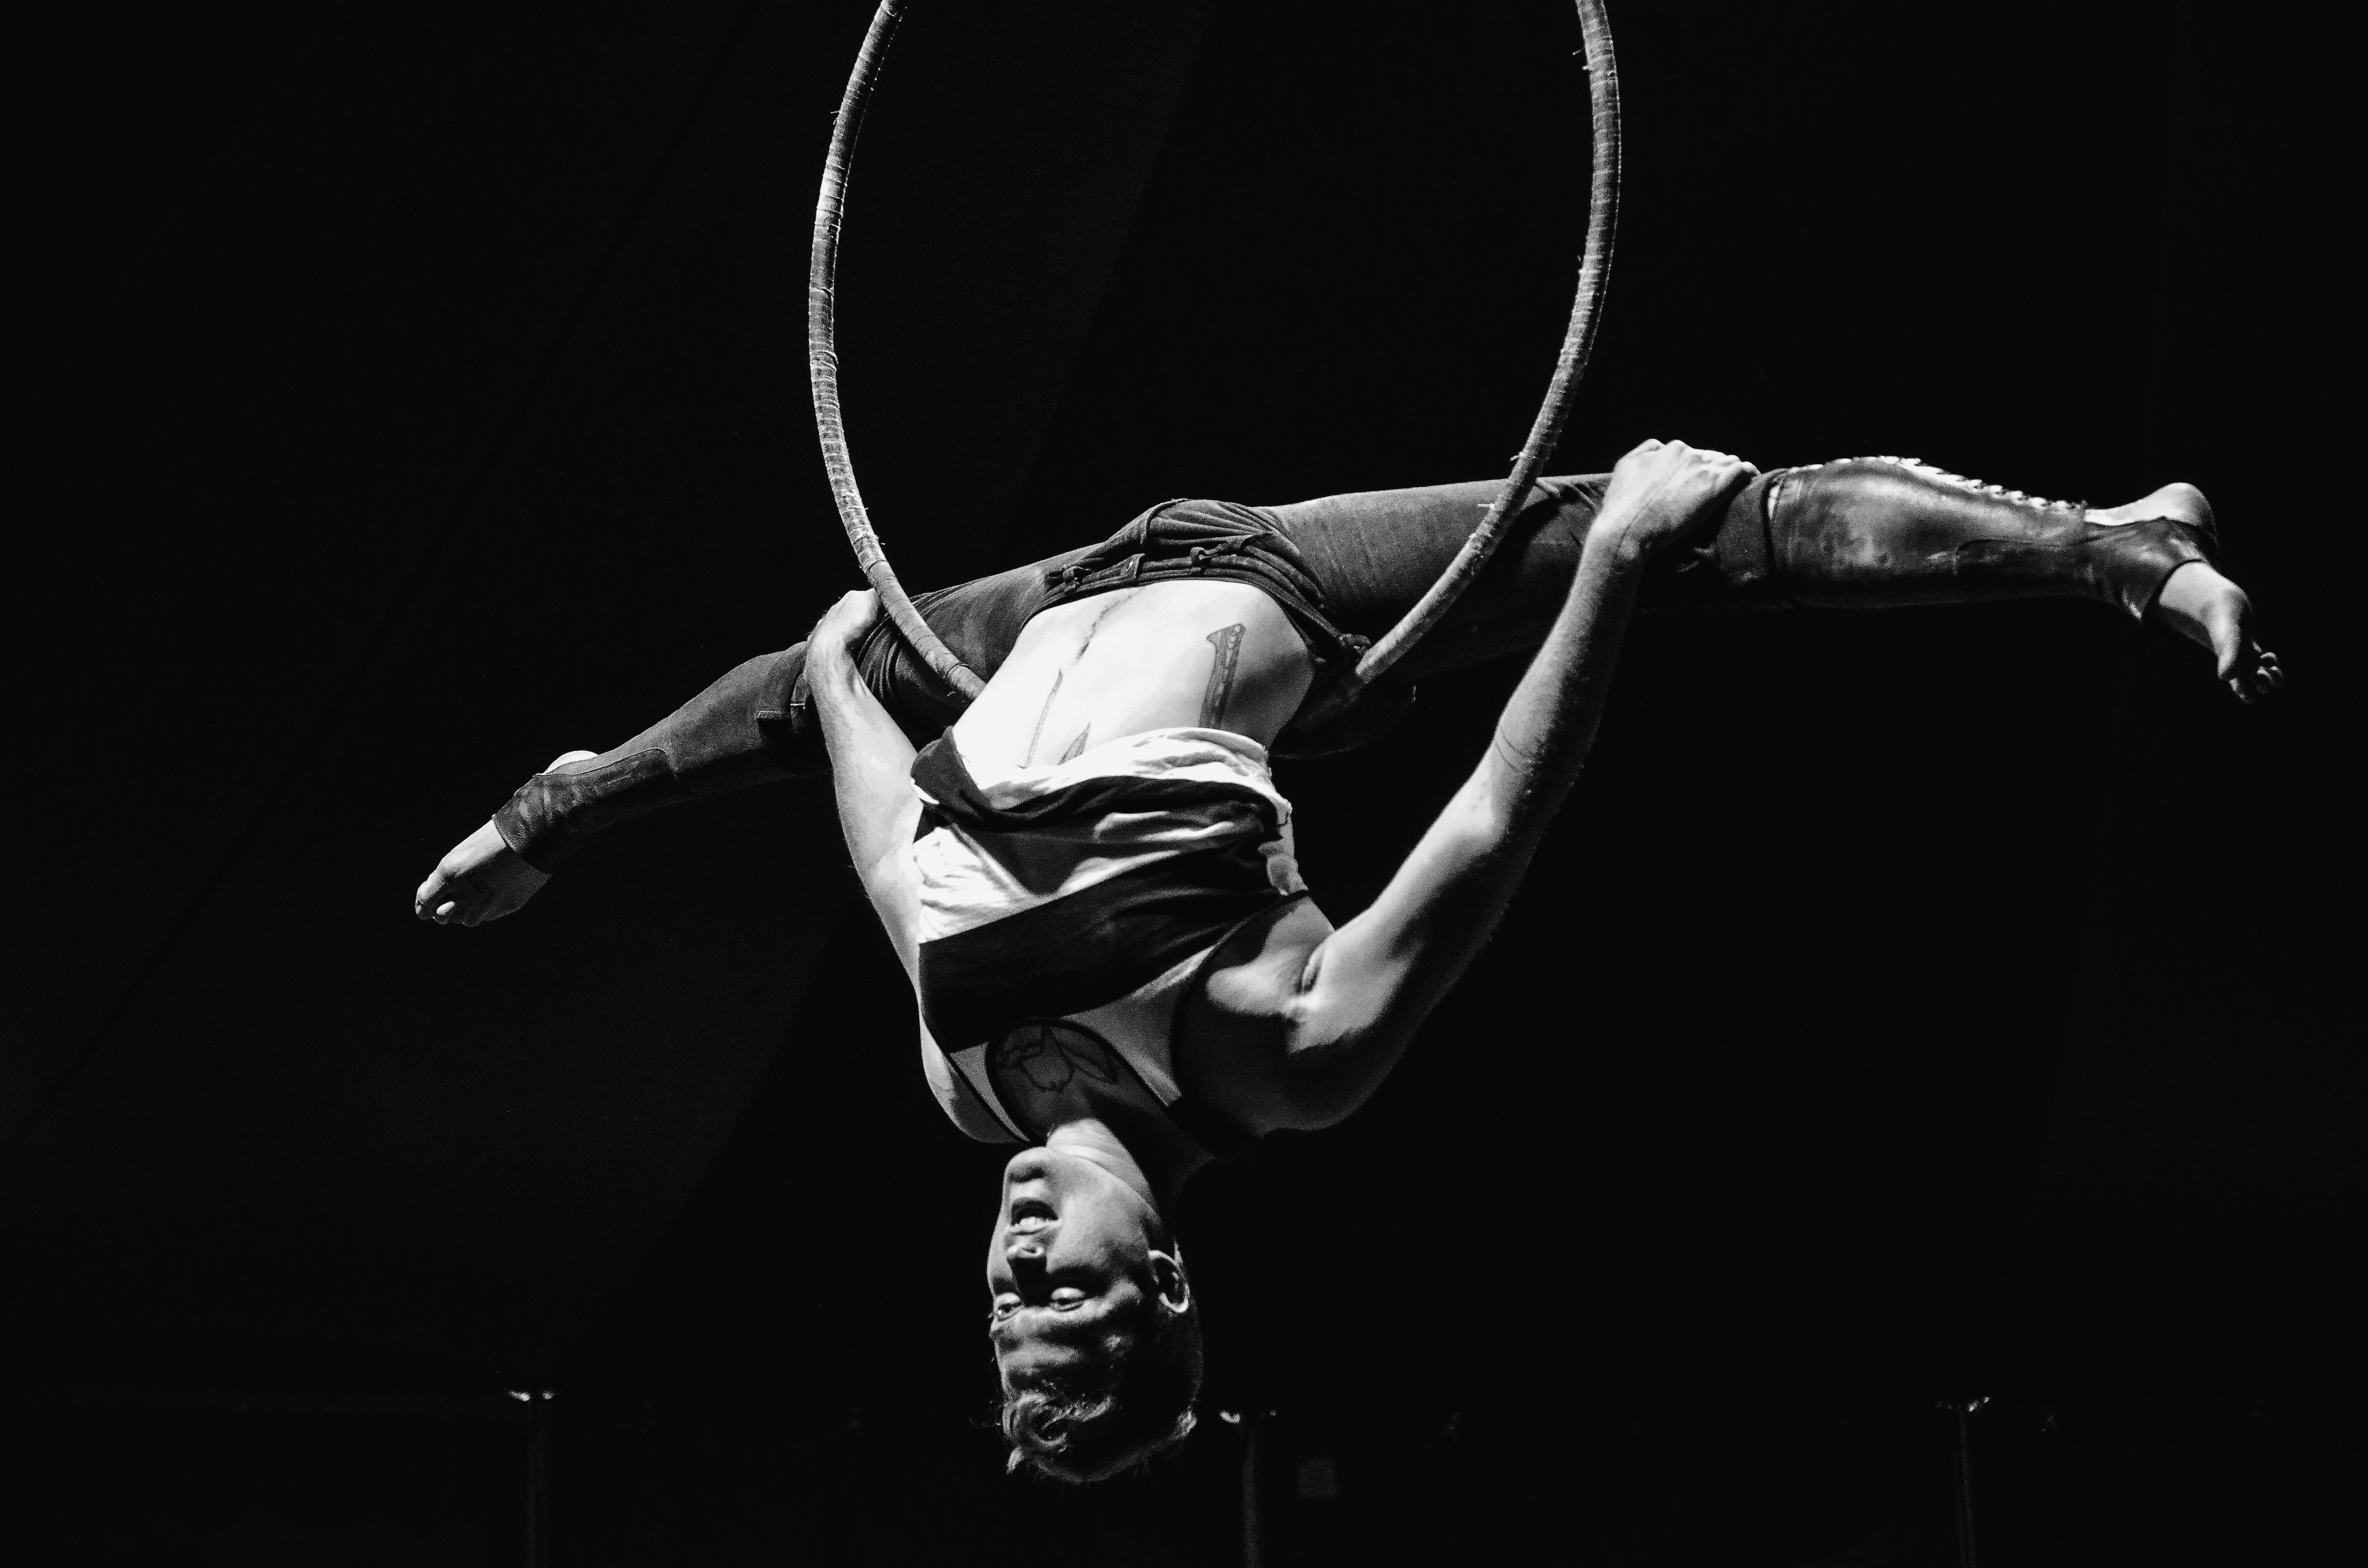 Acrobat Trick on a Hula Hoop 147.29 Kb